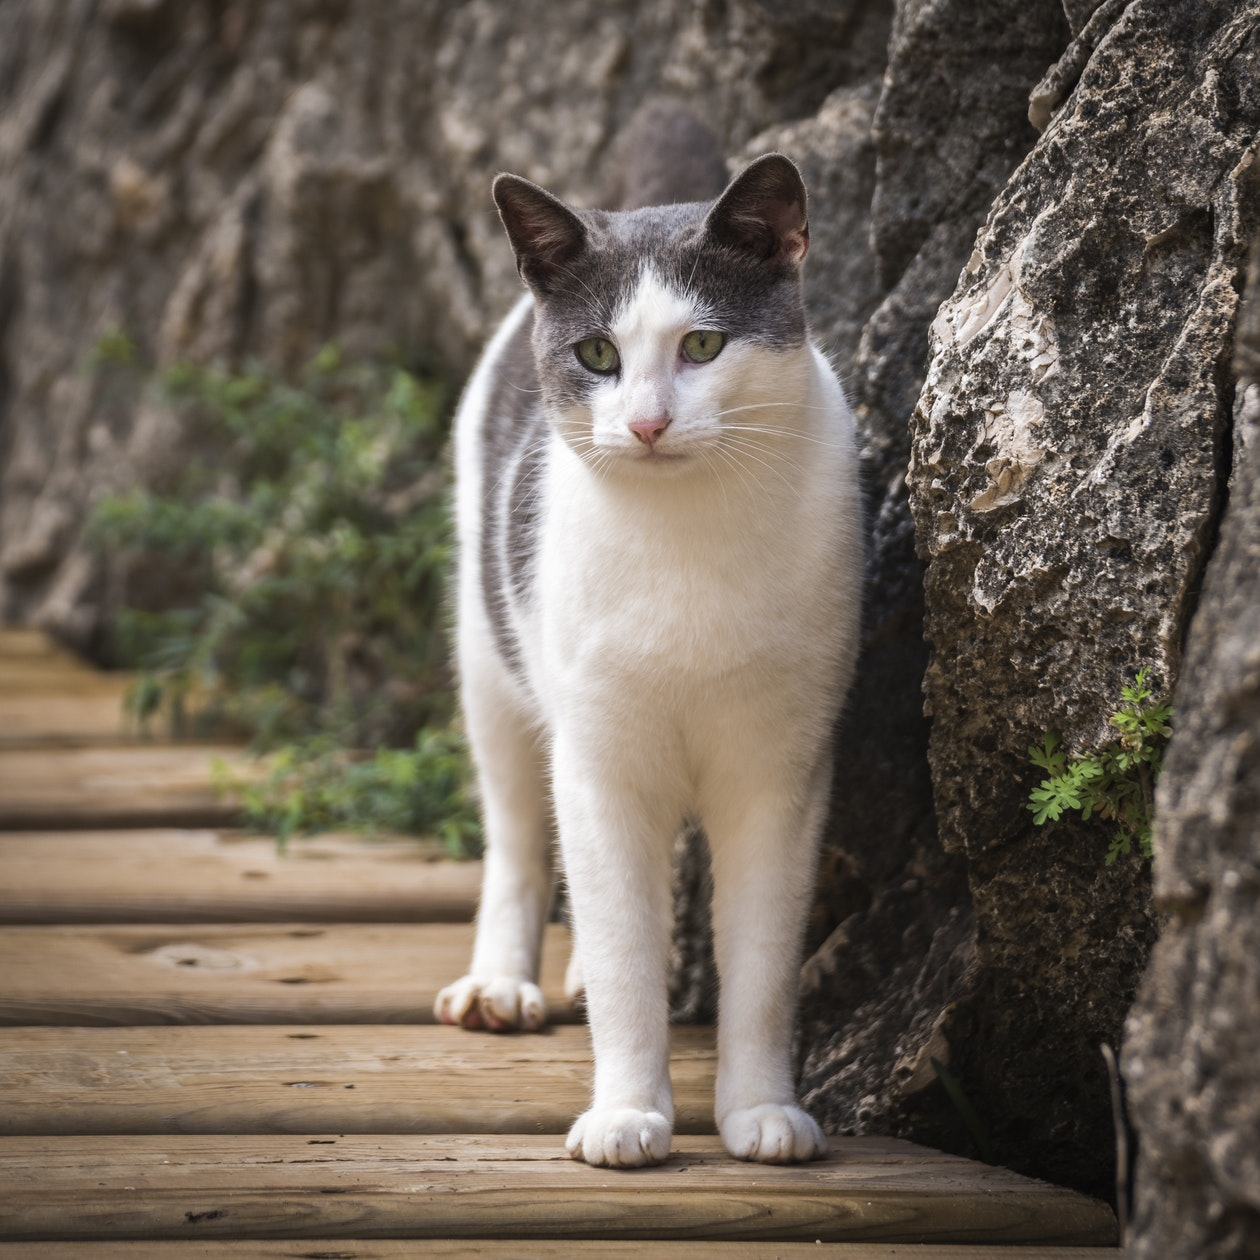 cat standing on walkway